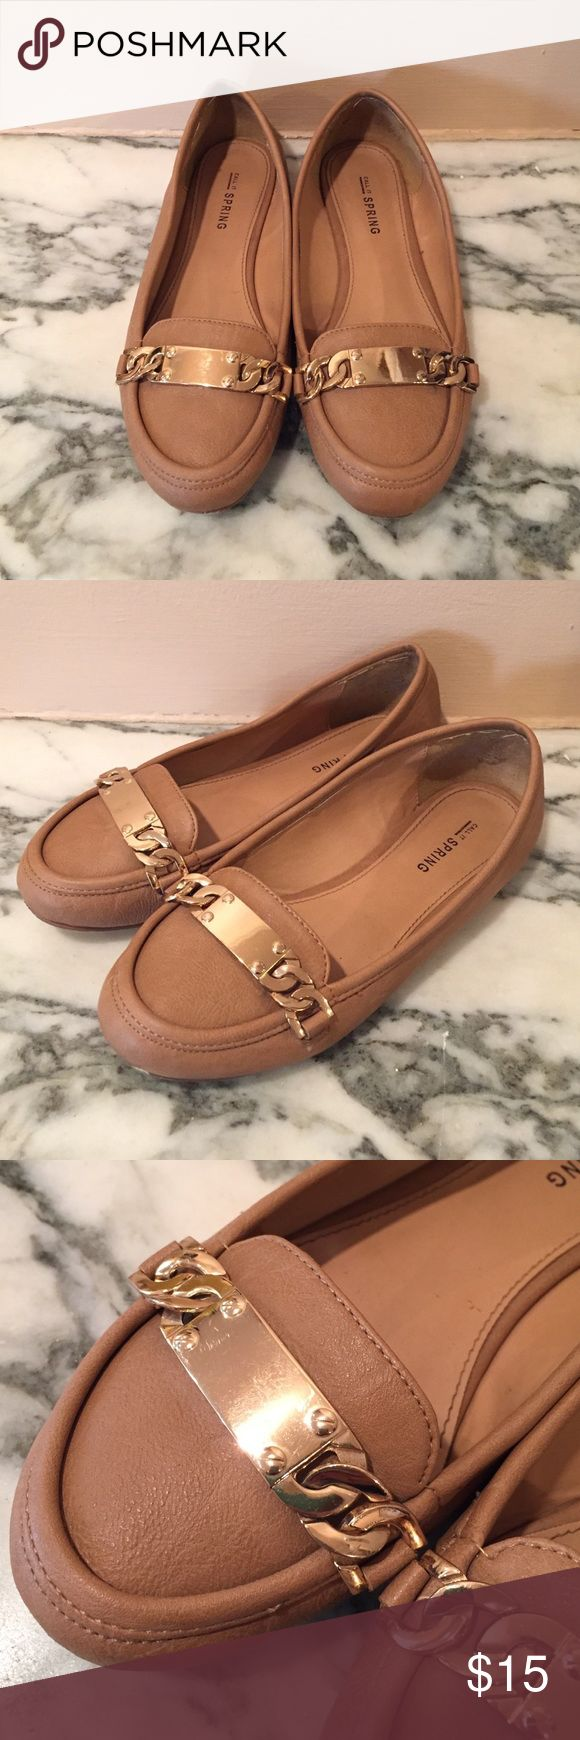 Tan loafer flats with gold chain detailing Barely worn tan flats from Call It Spring with a gold chain detail on the front. Has a bit of a loafer shape but with a much lower vamp. Call It Spring Shoes Flats & Loafers